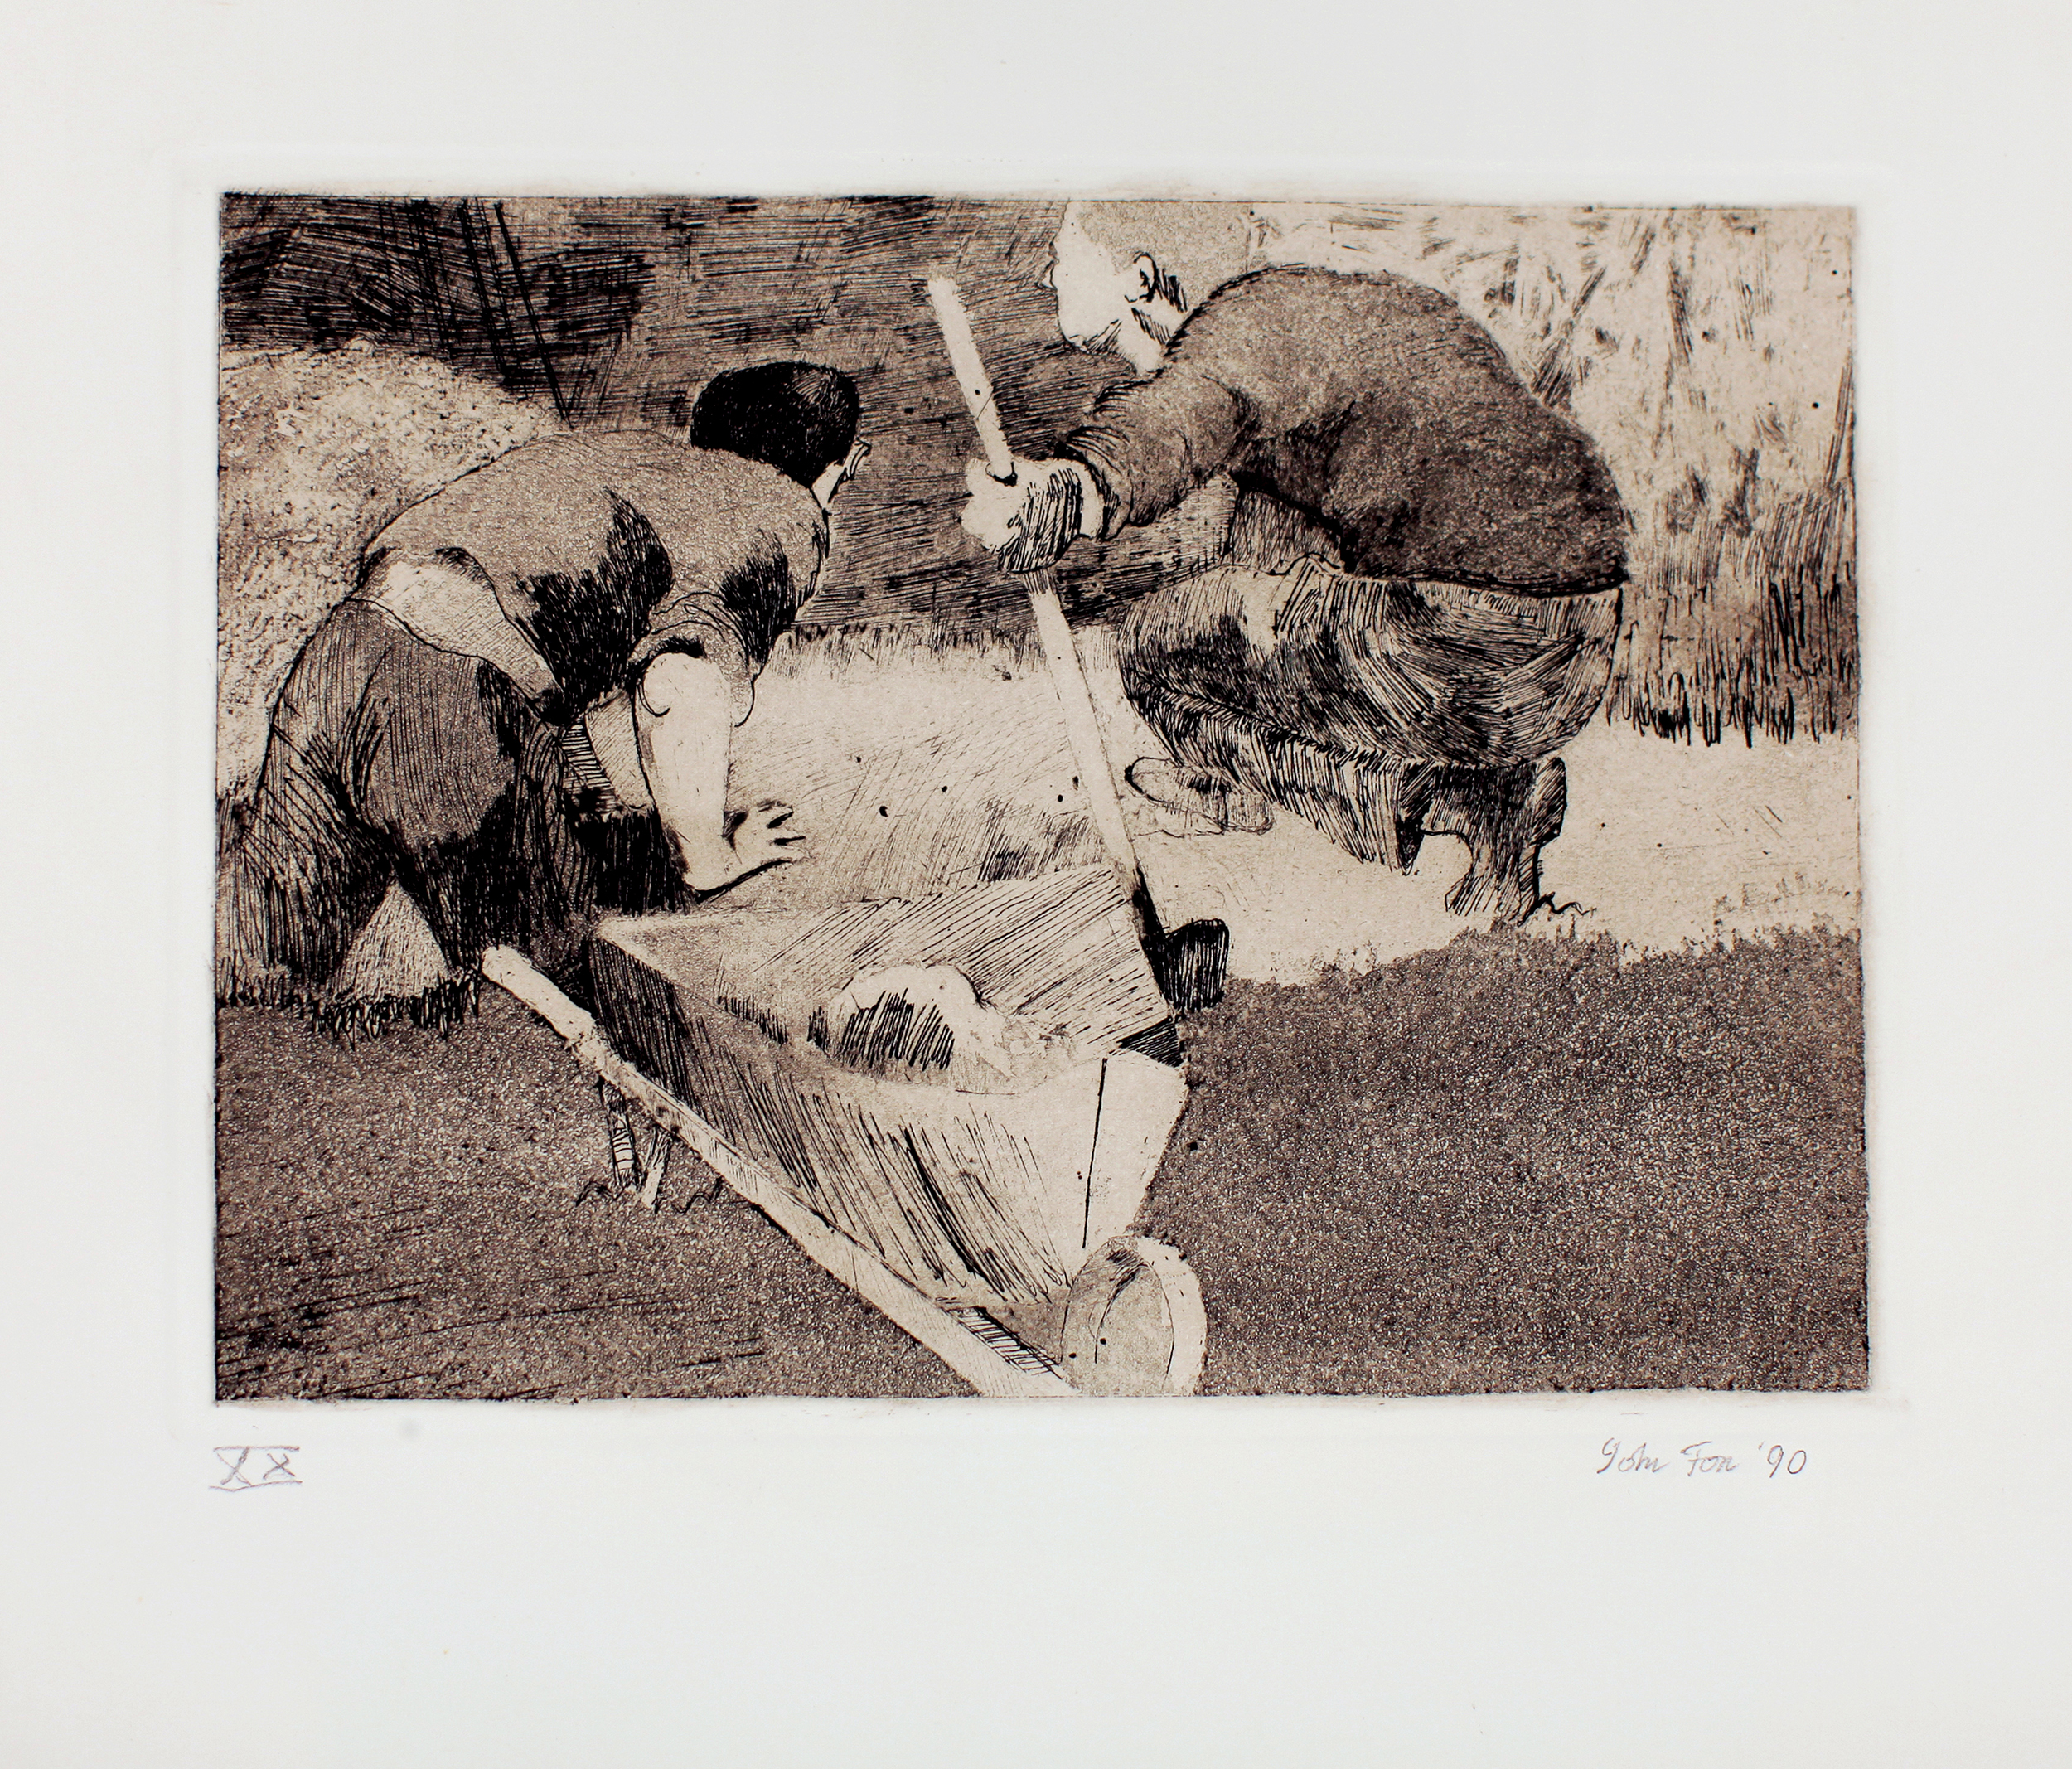 1990_Diggers_etching_drypoint_and_aquatint_on_paper_XX(state)_paper_14x14in_image_8x11in_WPF432.jpg